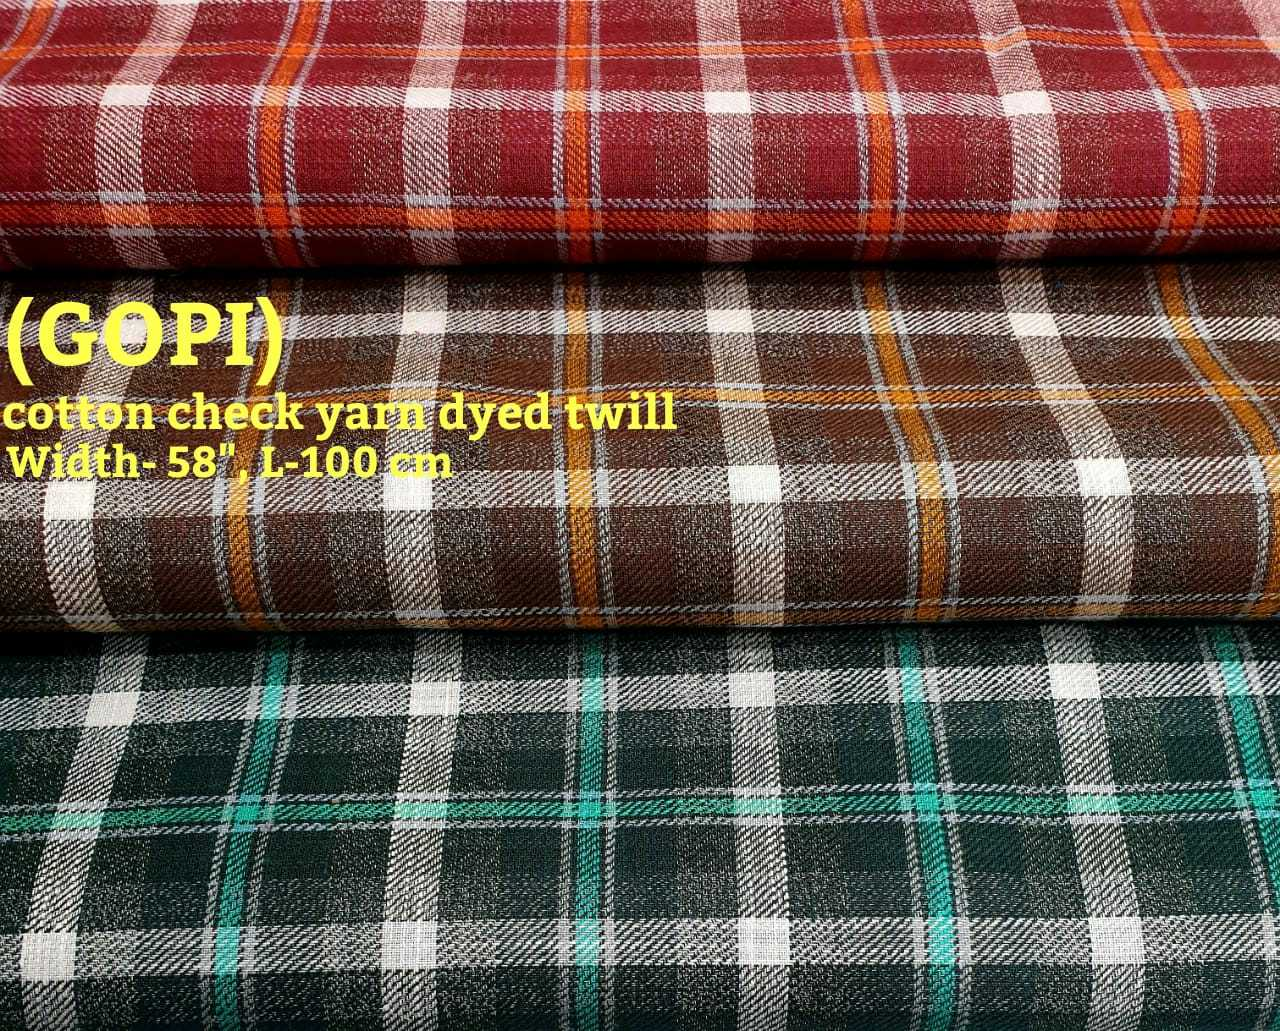 Gopi cotton check yarn dyed twill